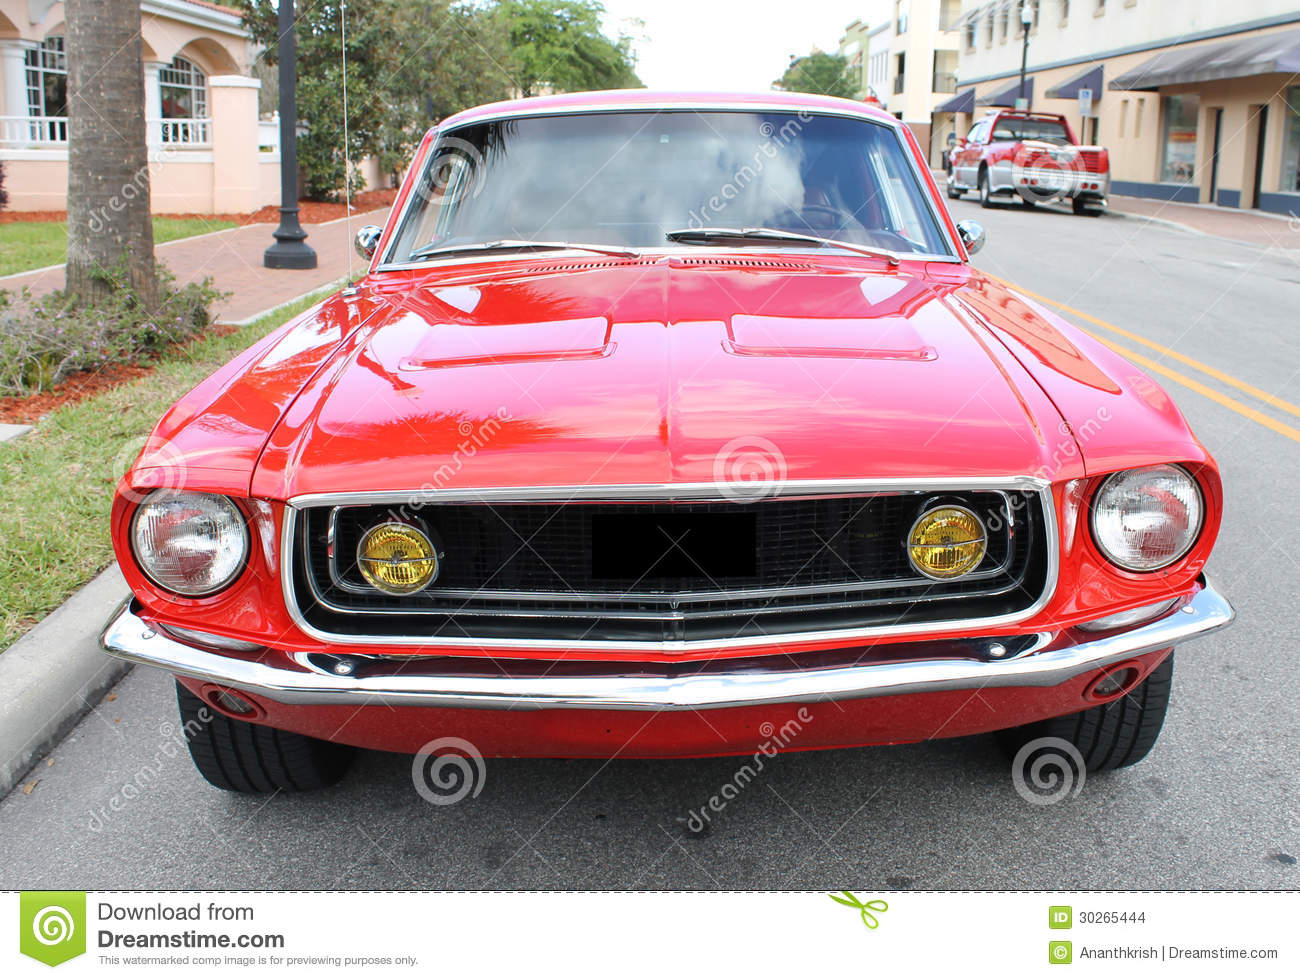 vieille voiture de mustang de ford images stock image. Black Bedroom Furniture Sets. Home Design Ideas